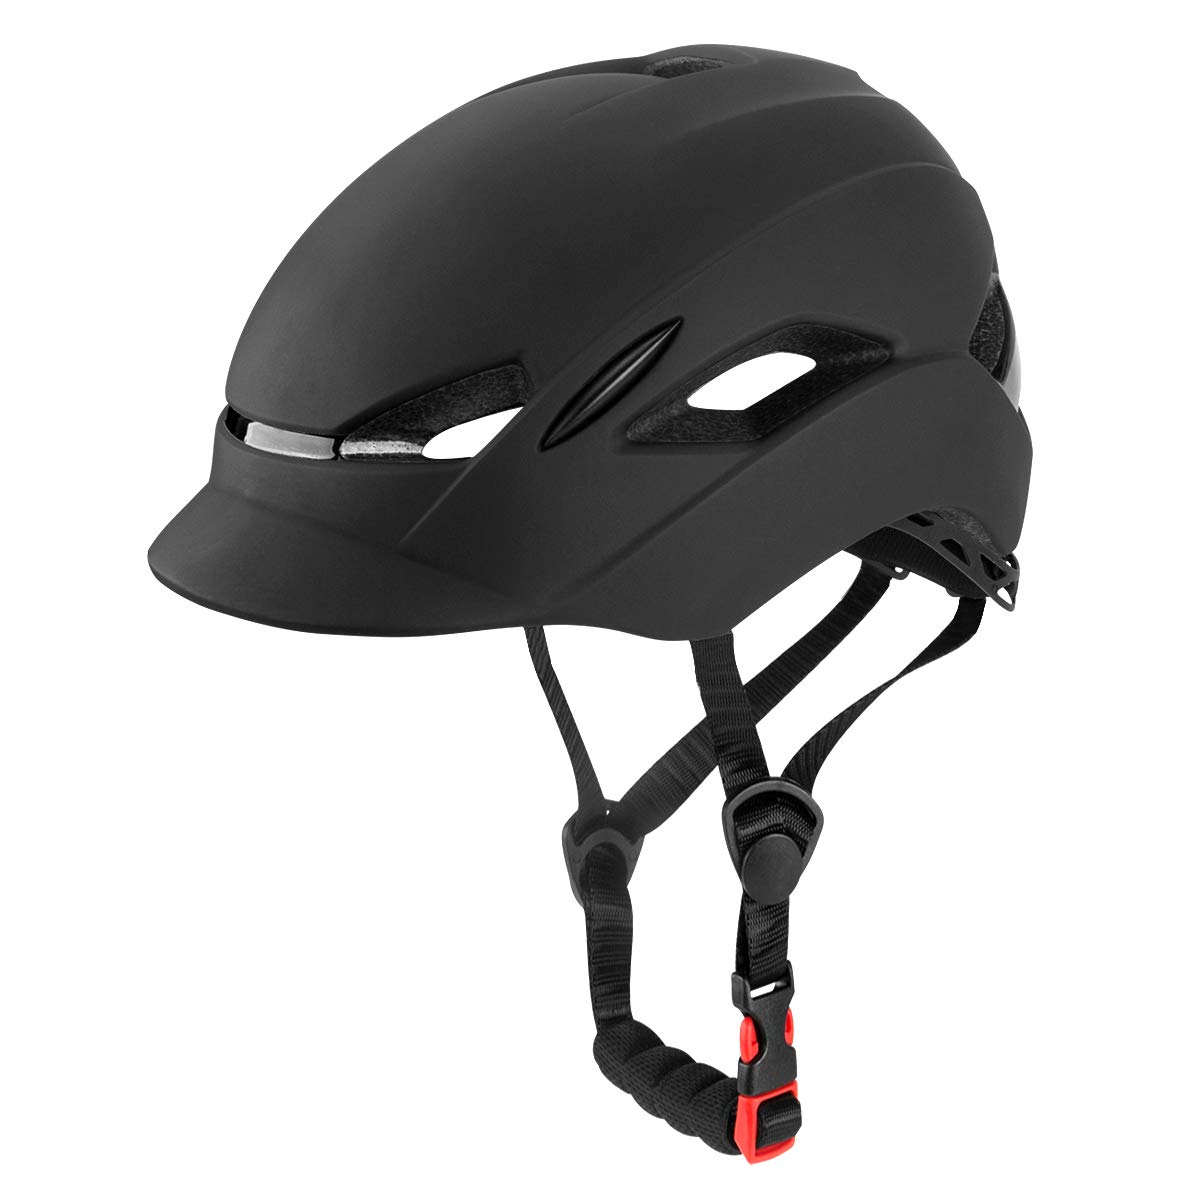 Fit Head Size 22-24IN KINGIKE City Urban Bike Helmet for Men Women,with Portable Backpack,Safety Taillight,CPSC Certified